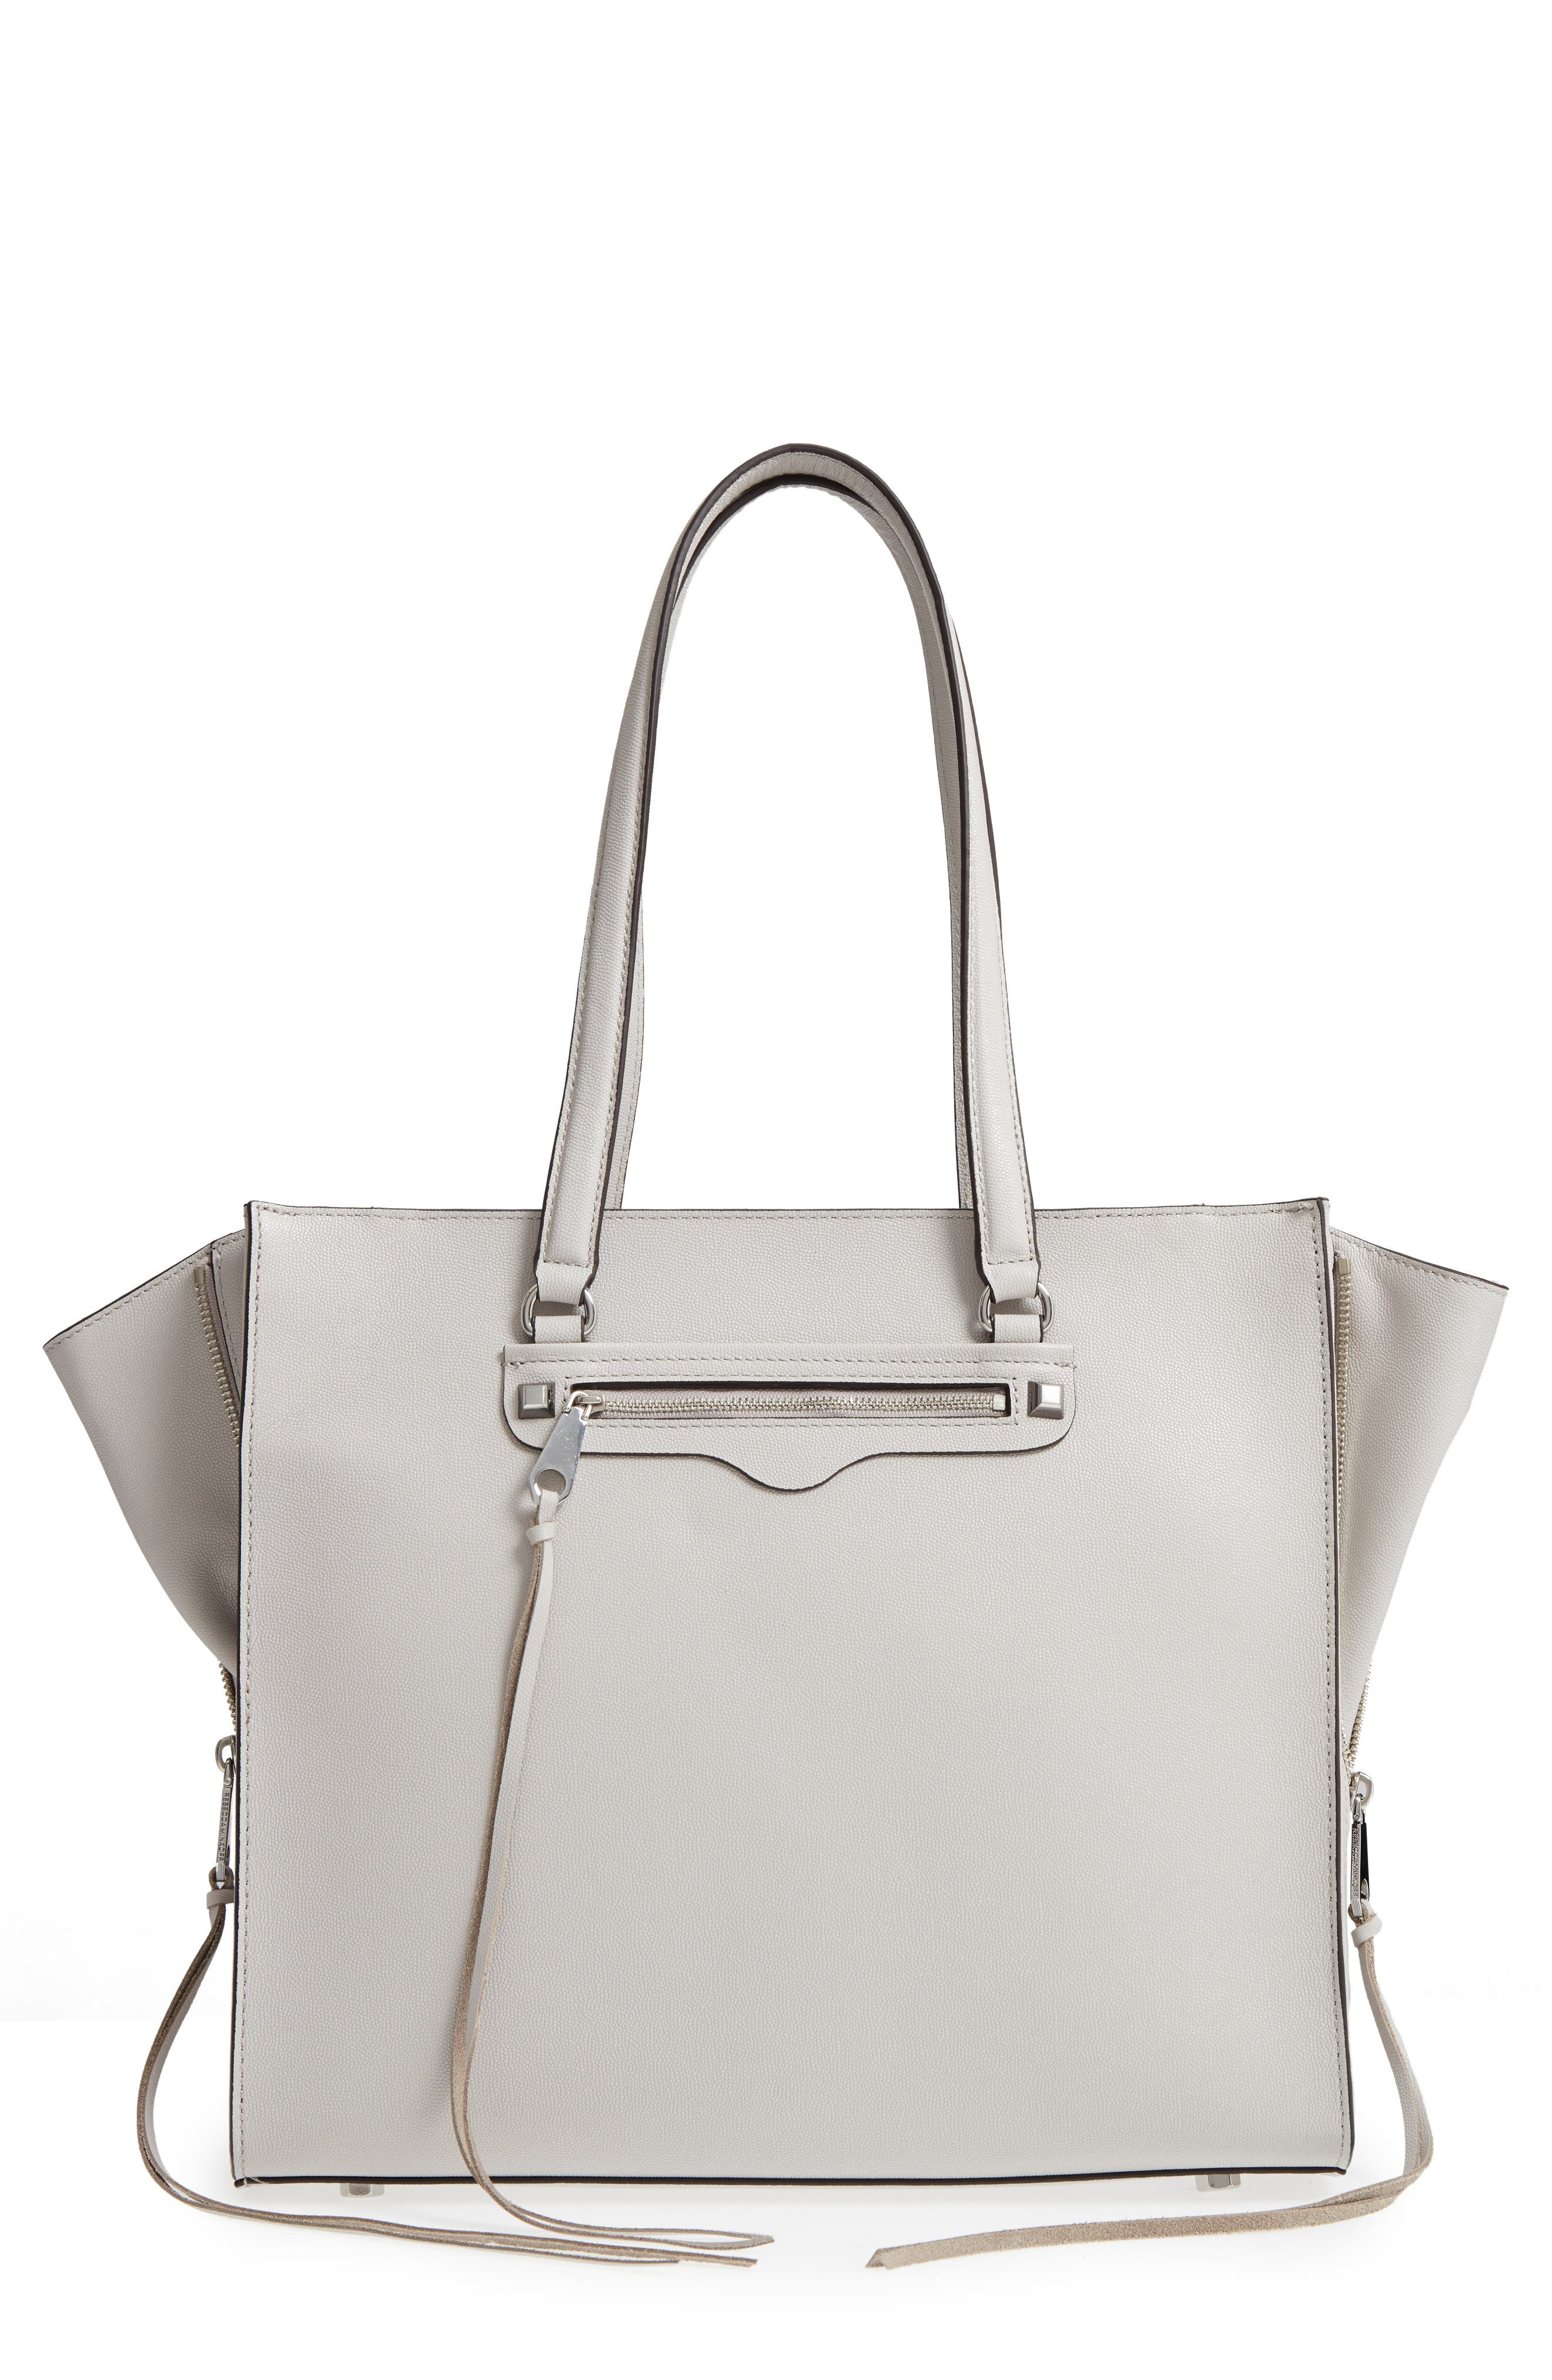 Always On Regan Leather Tote,                             Main thumbnail 1, color,                             Putty